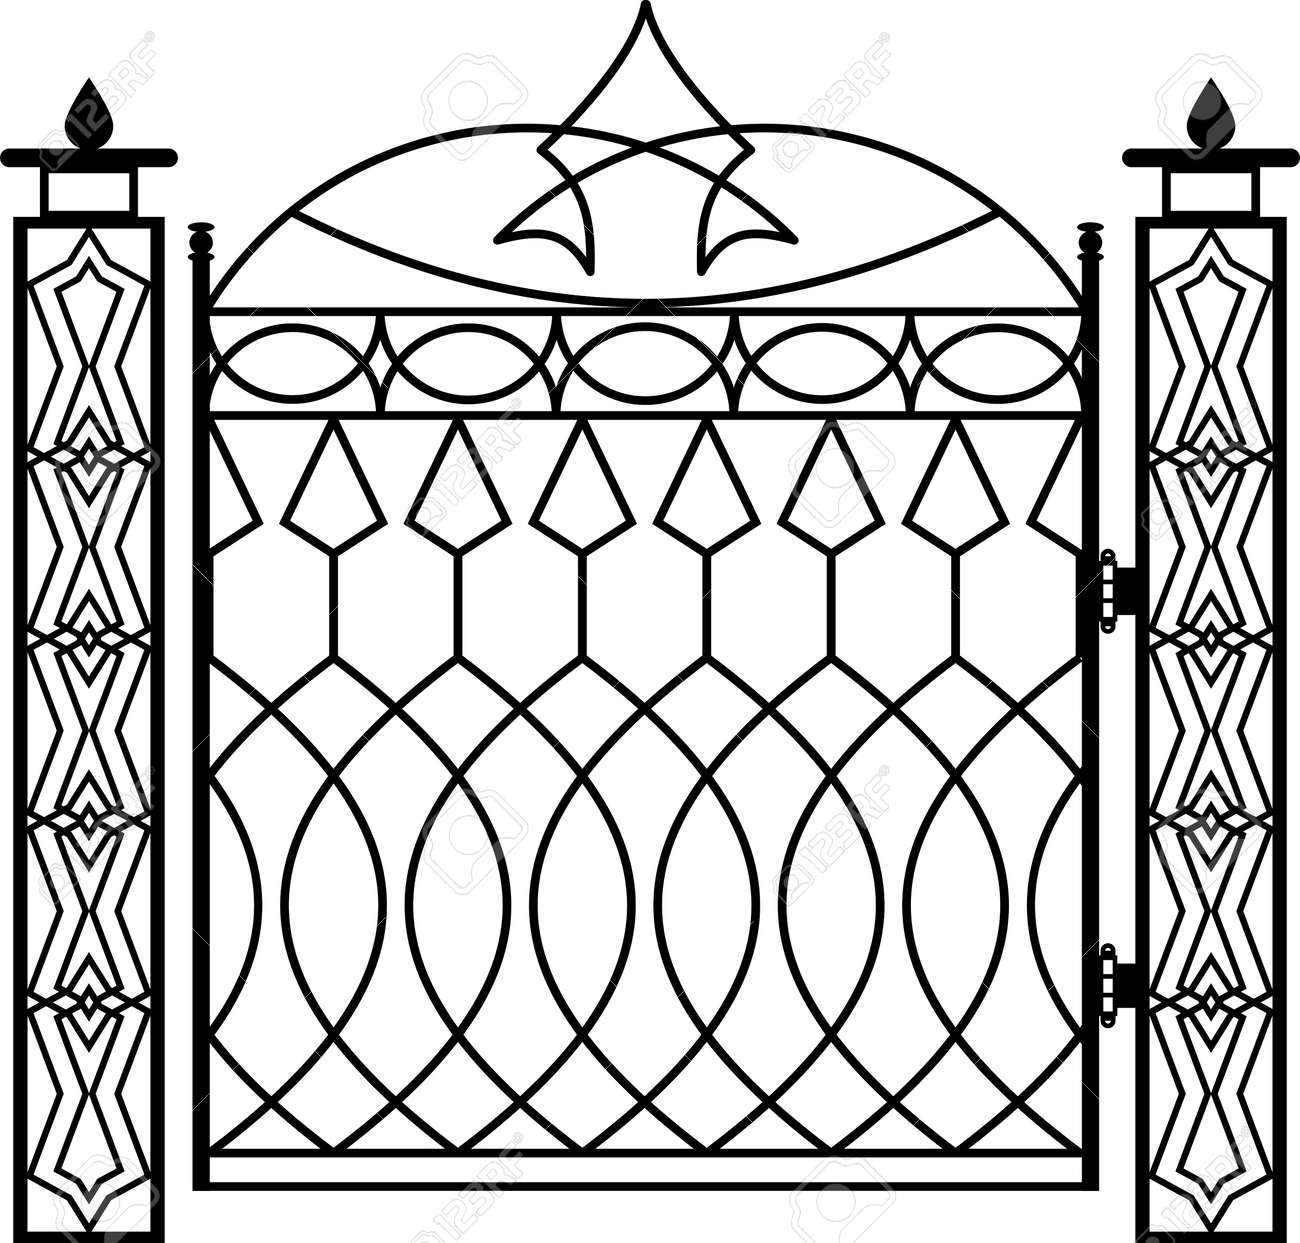 Vector   Wrought Iron Gate Pillar Vector Illustration